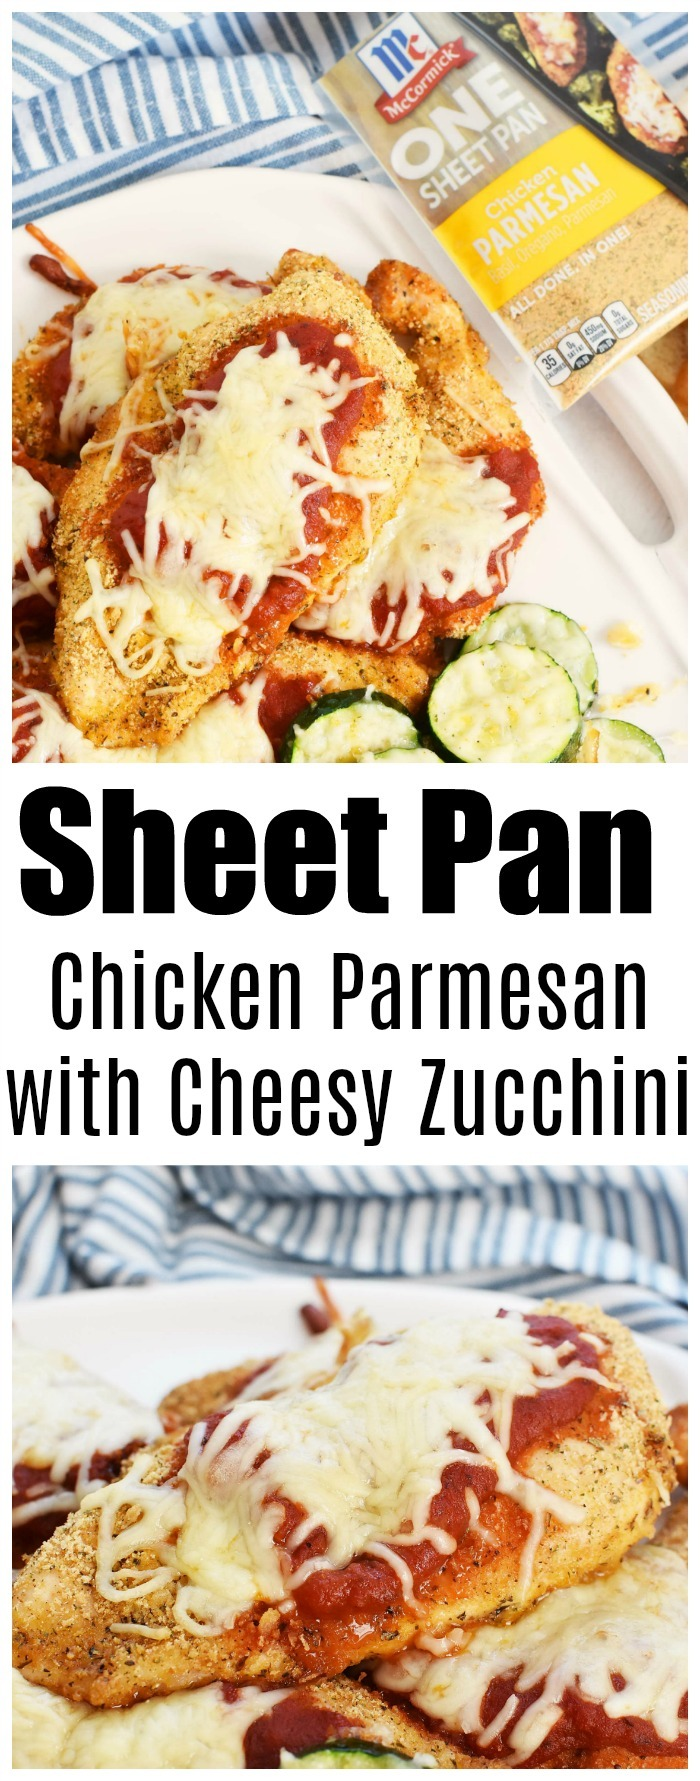 Sheet Pan Chicken Parmesan with Cheesy Zucchini